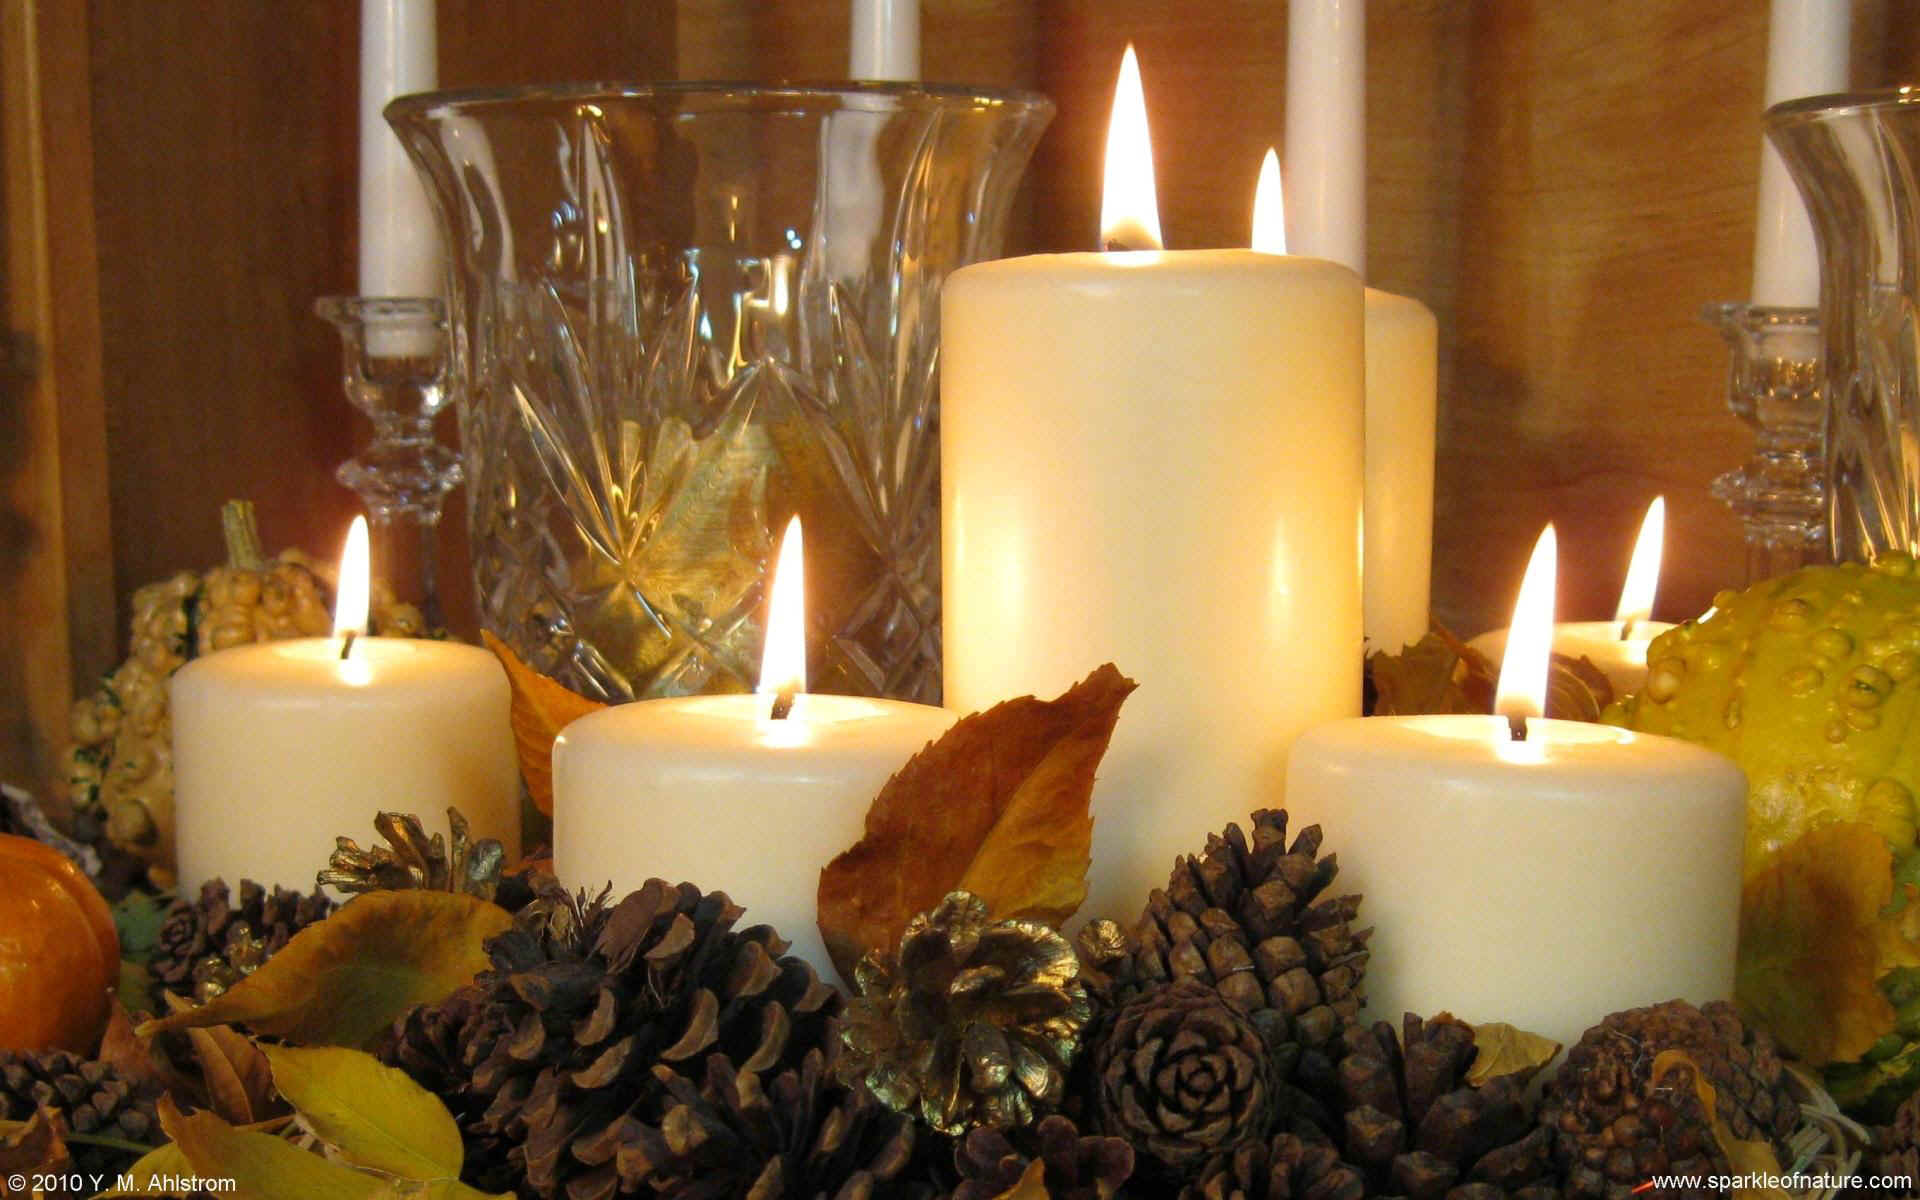 4090 fall candles 1 w 1920x1200.jpg (264055 bytes)